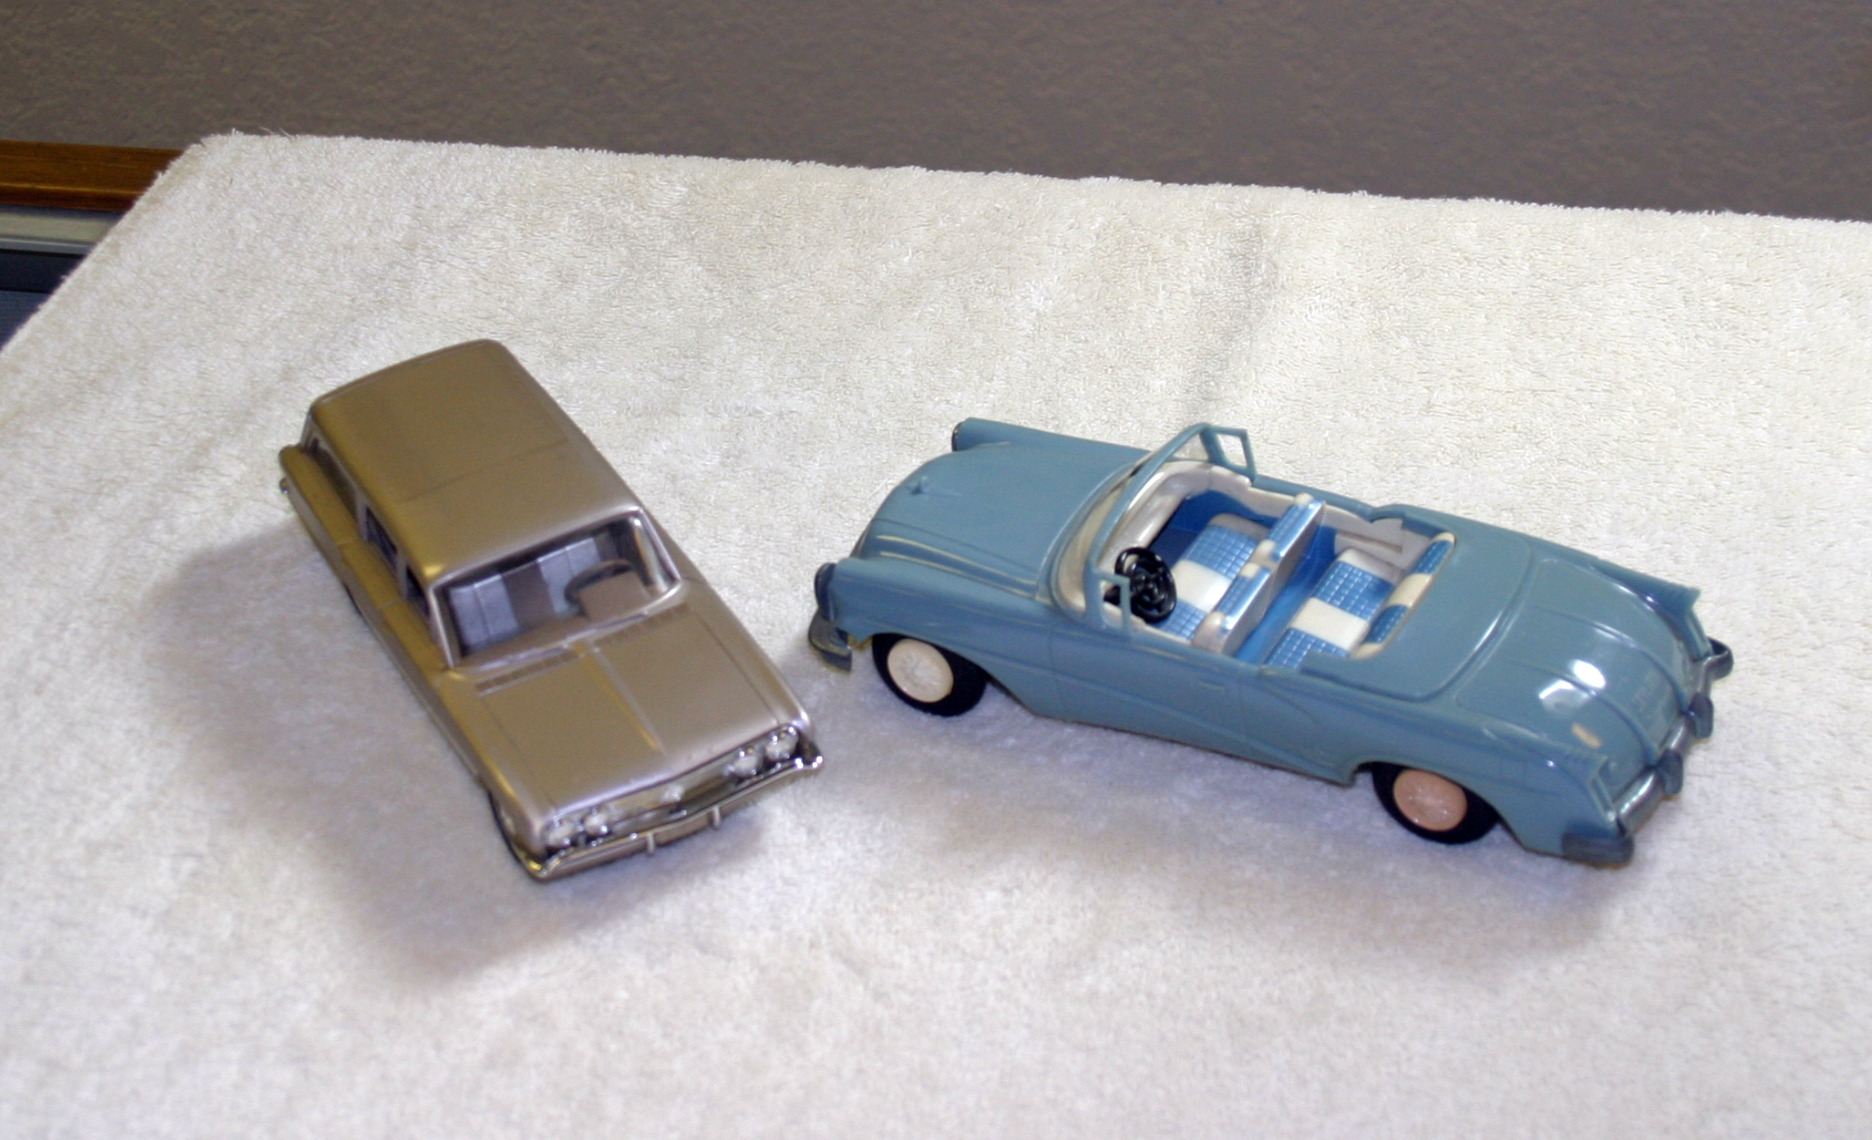 1962 Buick Special Station Wagon and 1954 Buick Skylark ...